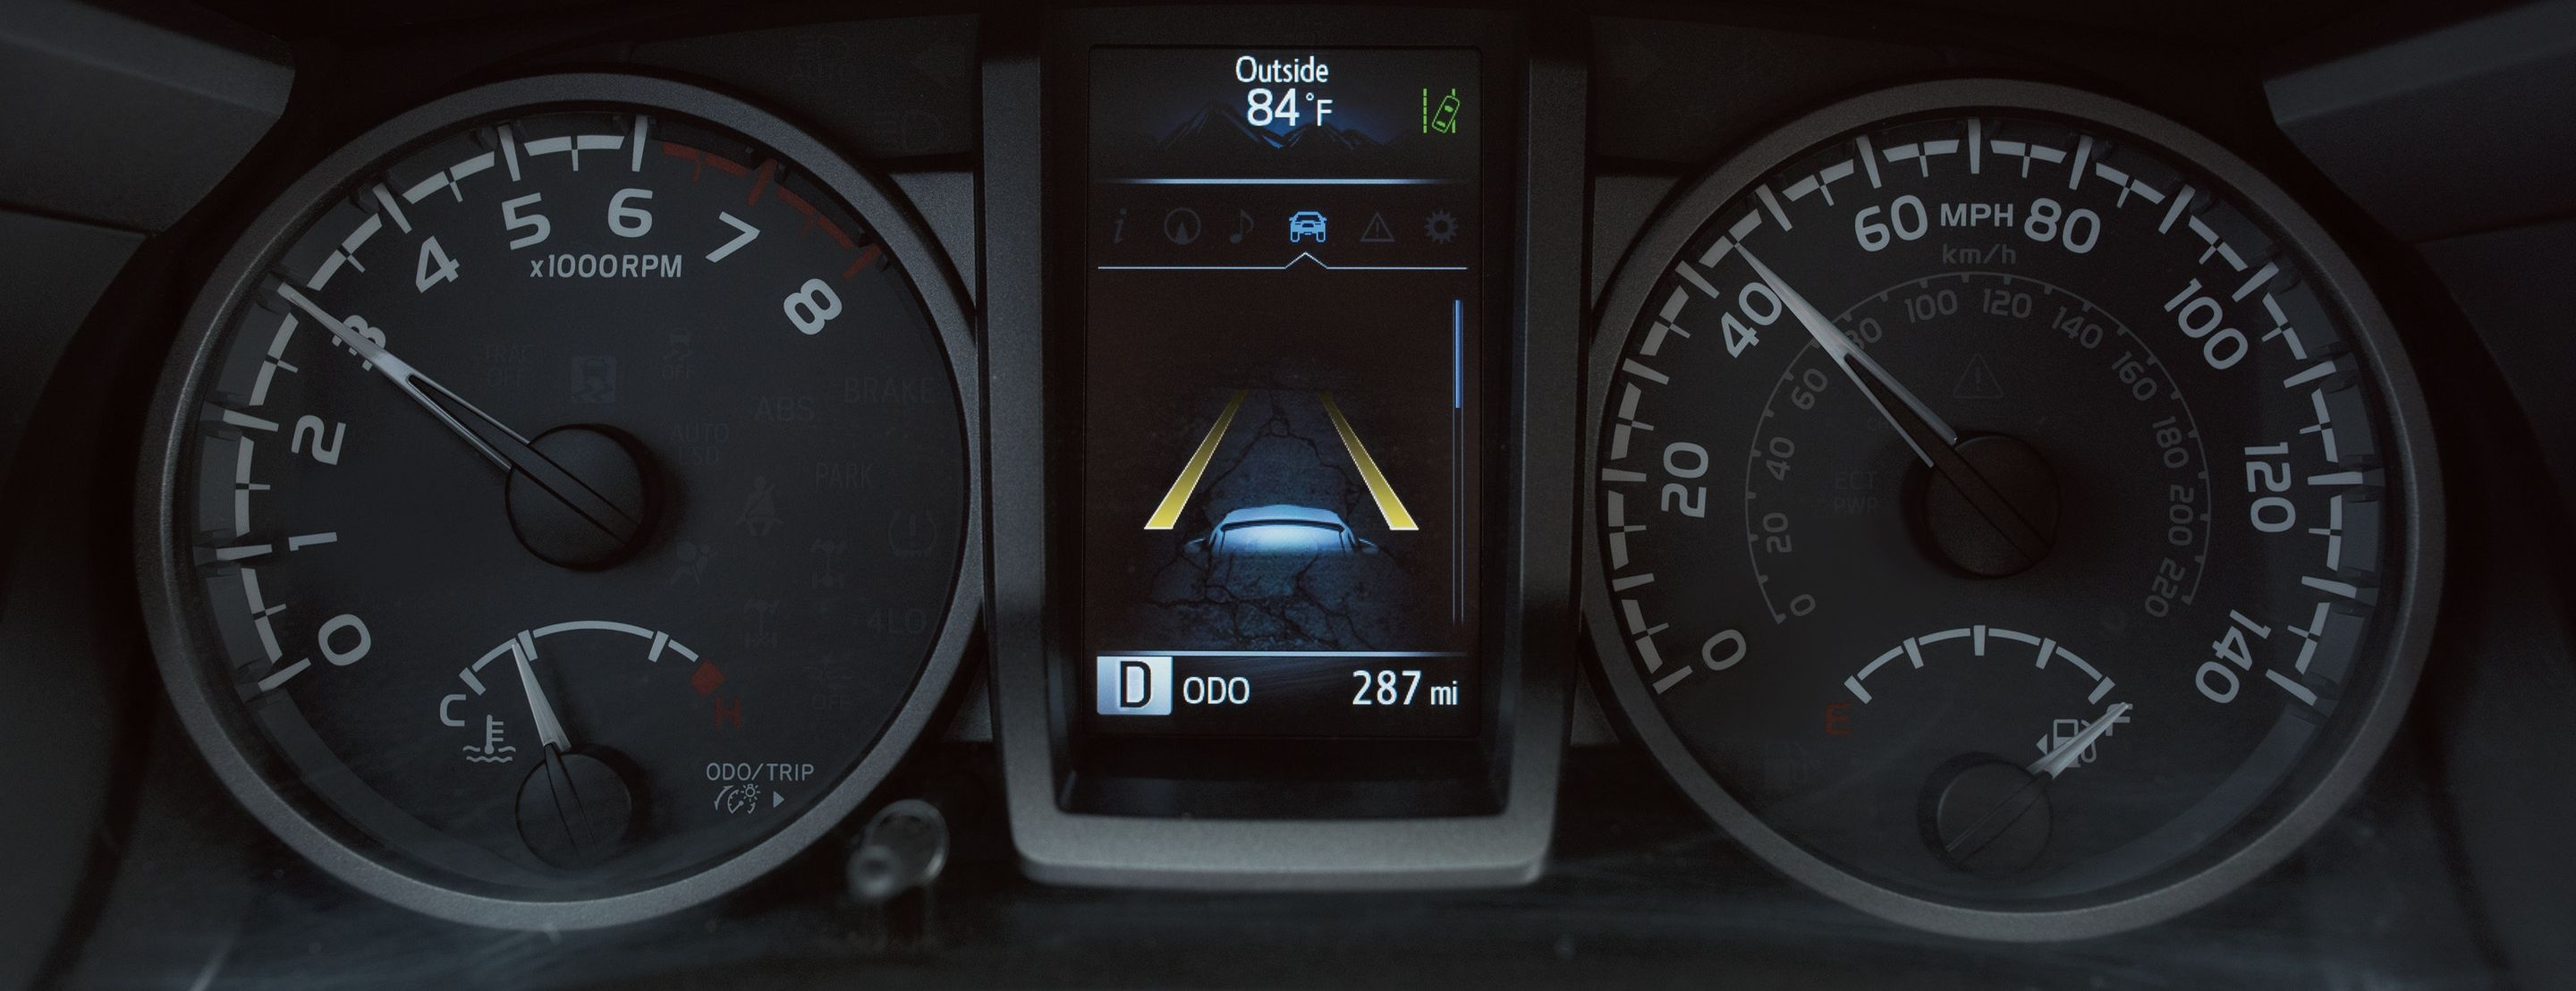 Instrument Panel of the 2019 Toyota Tacoma